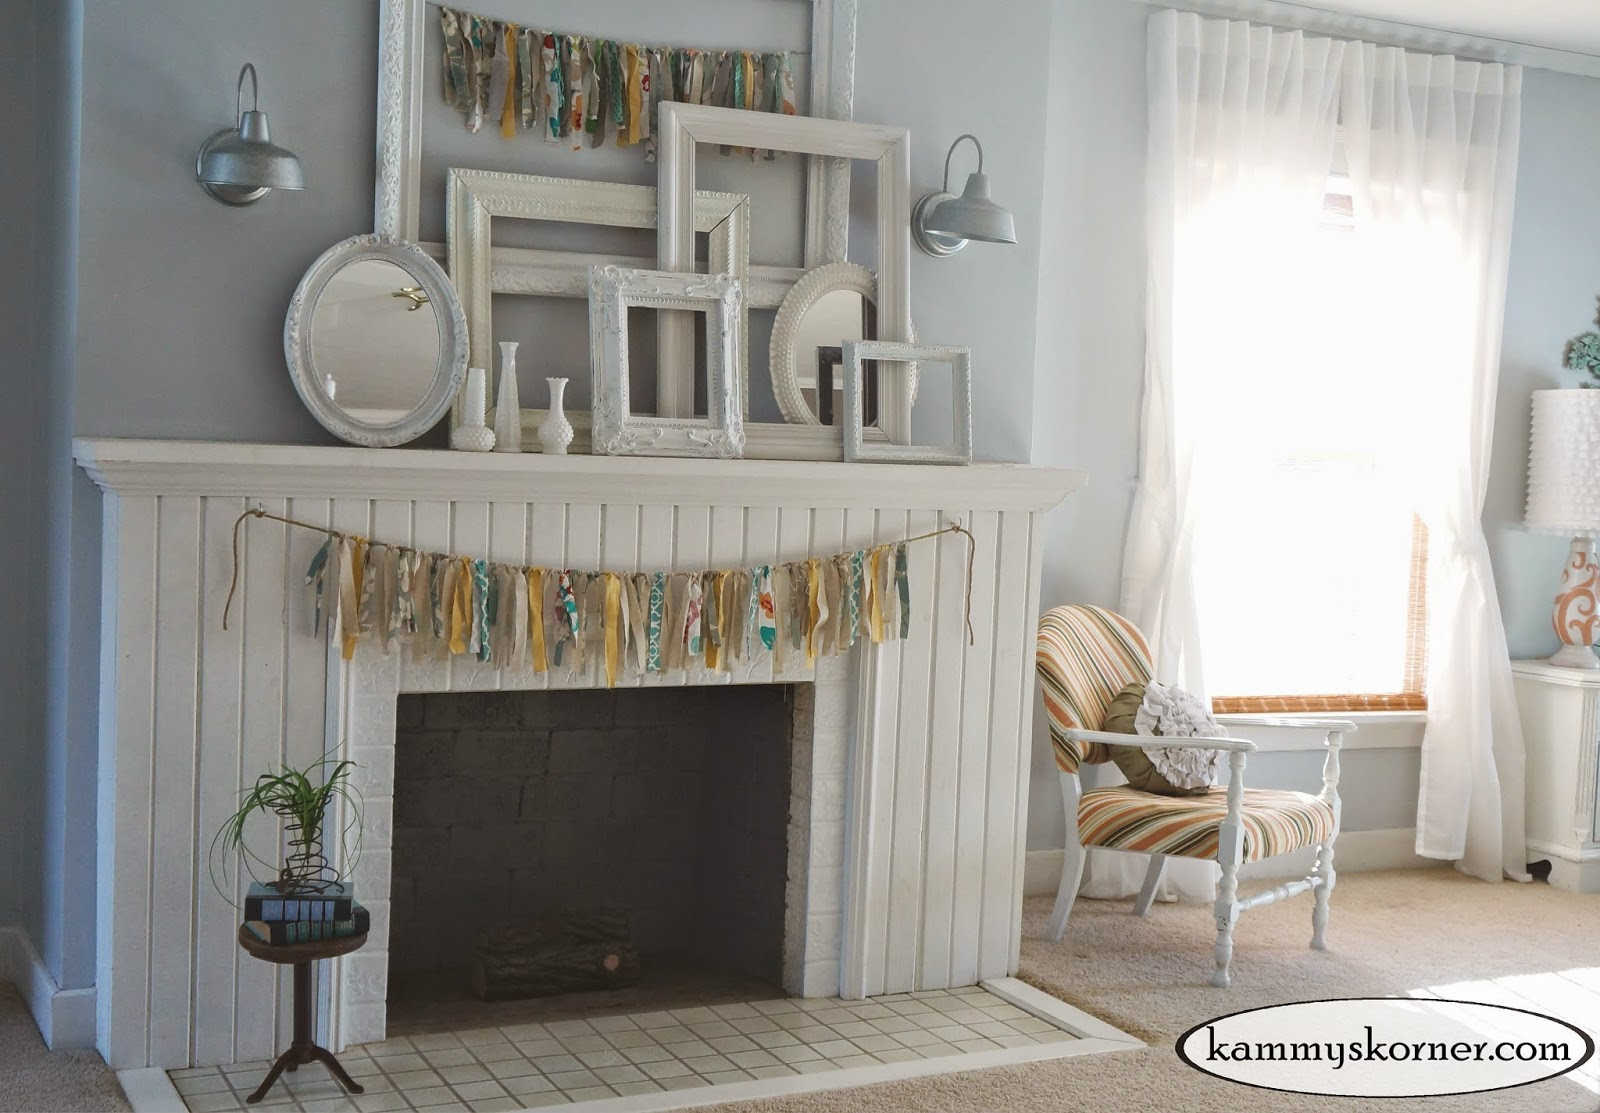 Kammy's Korner: Fireplace #3 All Shabby Chic {Master Bedroom}